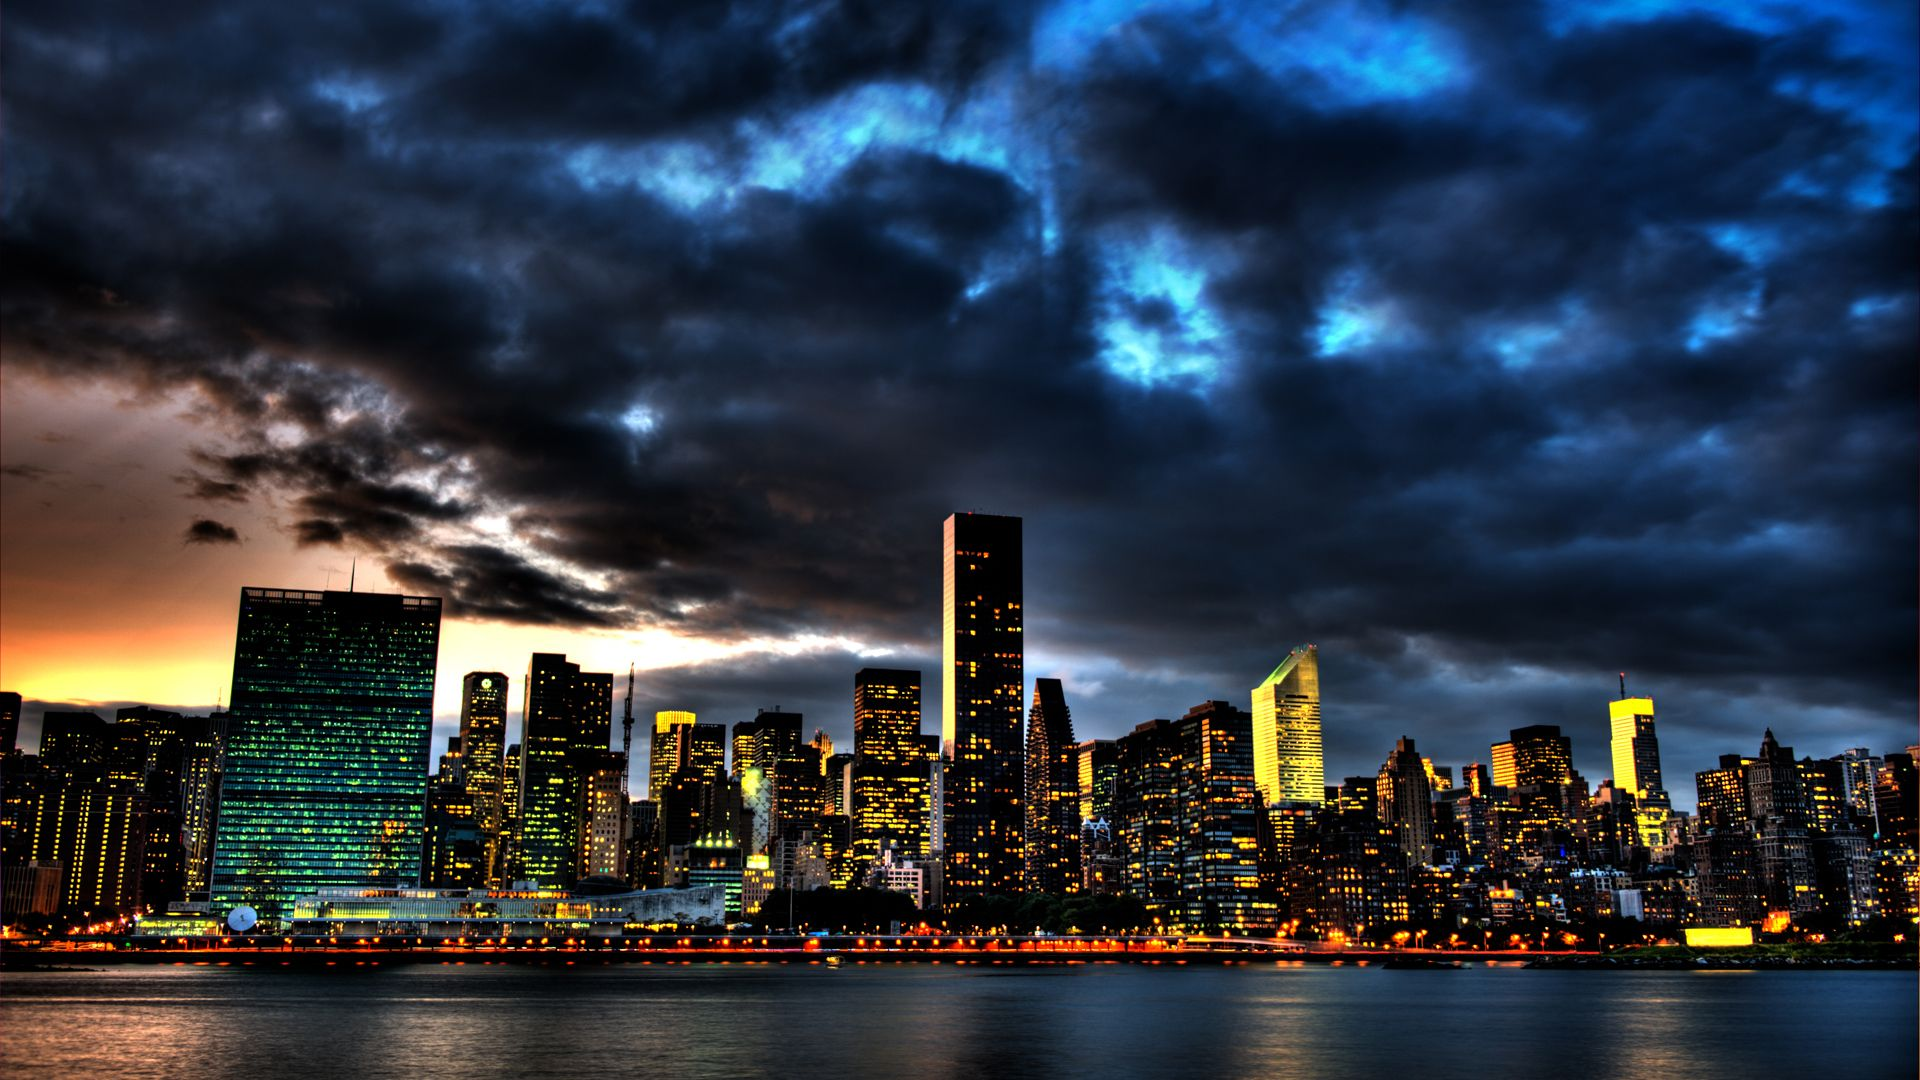 Dark City Hd Wallpaper New York Wallpaper City Wallpaper New York Night